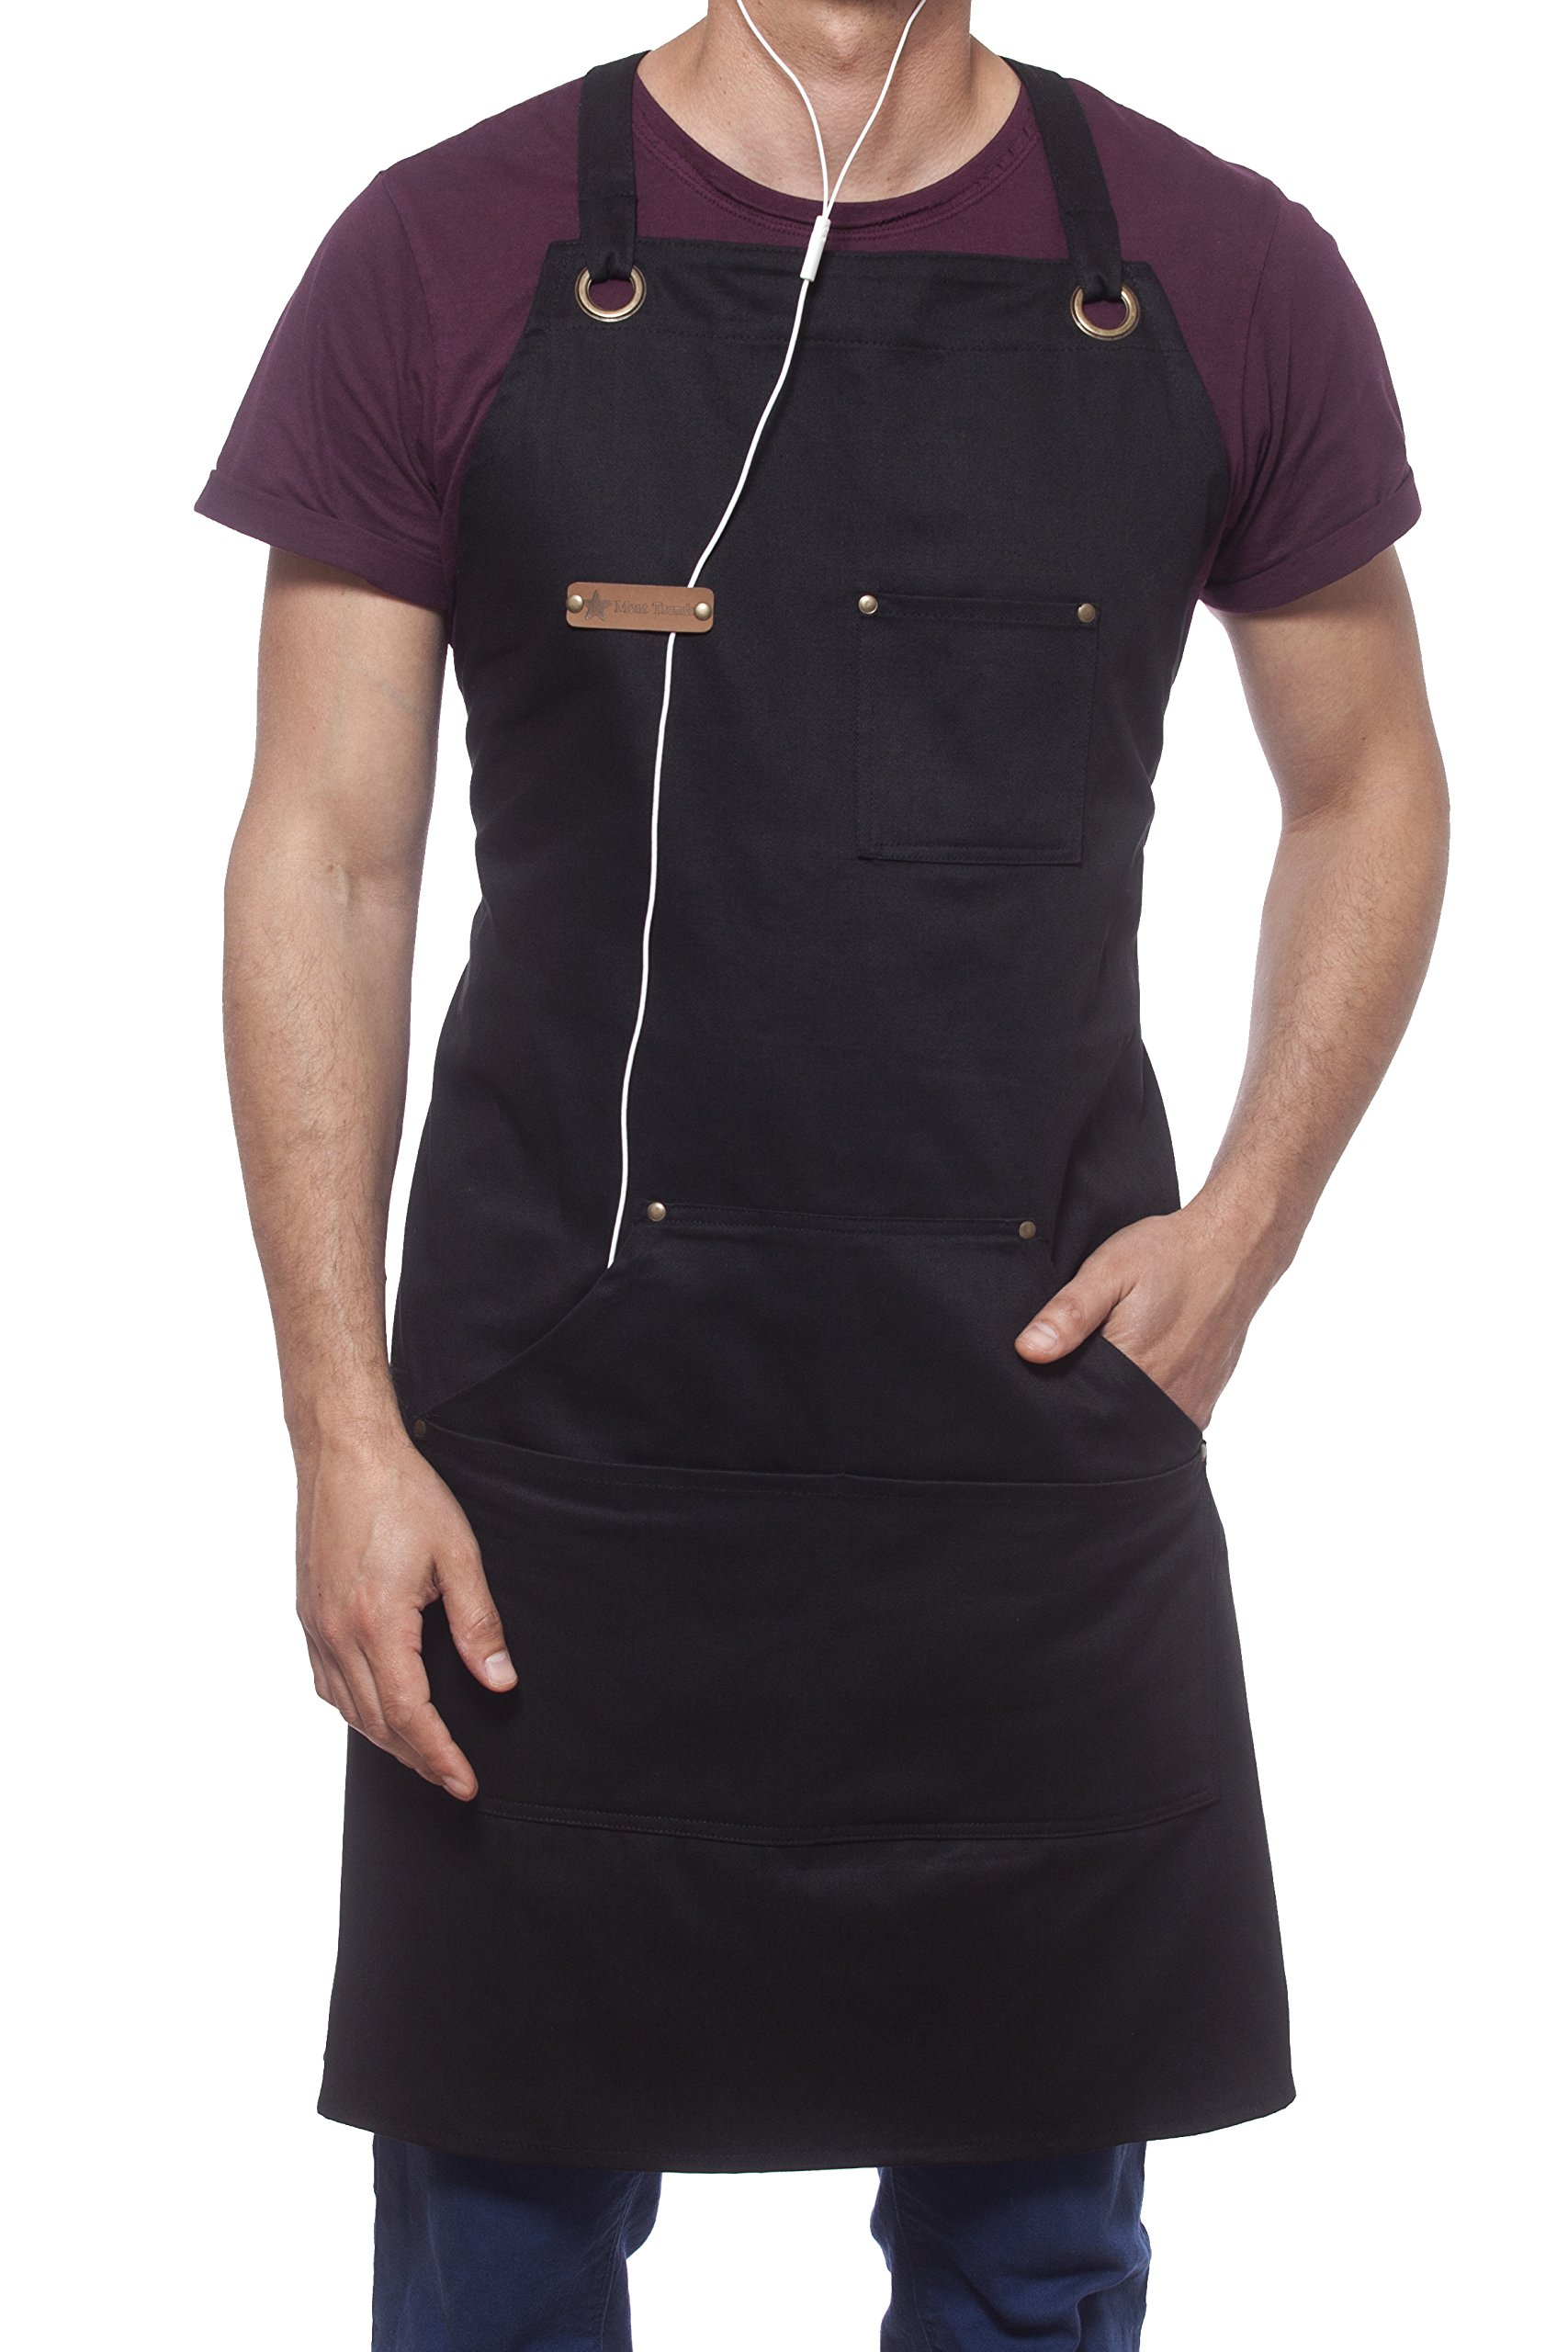 MENT Trends Professional Cooking Apron Chef Designed For Kitchen BBQ Grill / 10 OZ Black Cotton For Women And Men Bib Adjustable/Towel Loop + Quick Release Buckle + Tool Pockets + Headphones Loop by MENT Trends